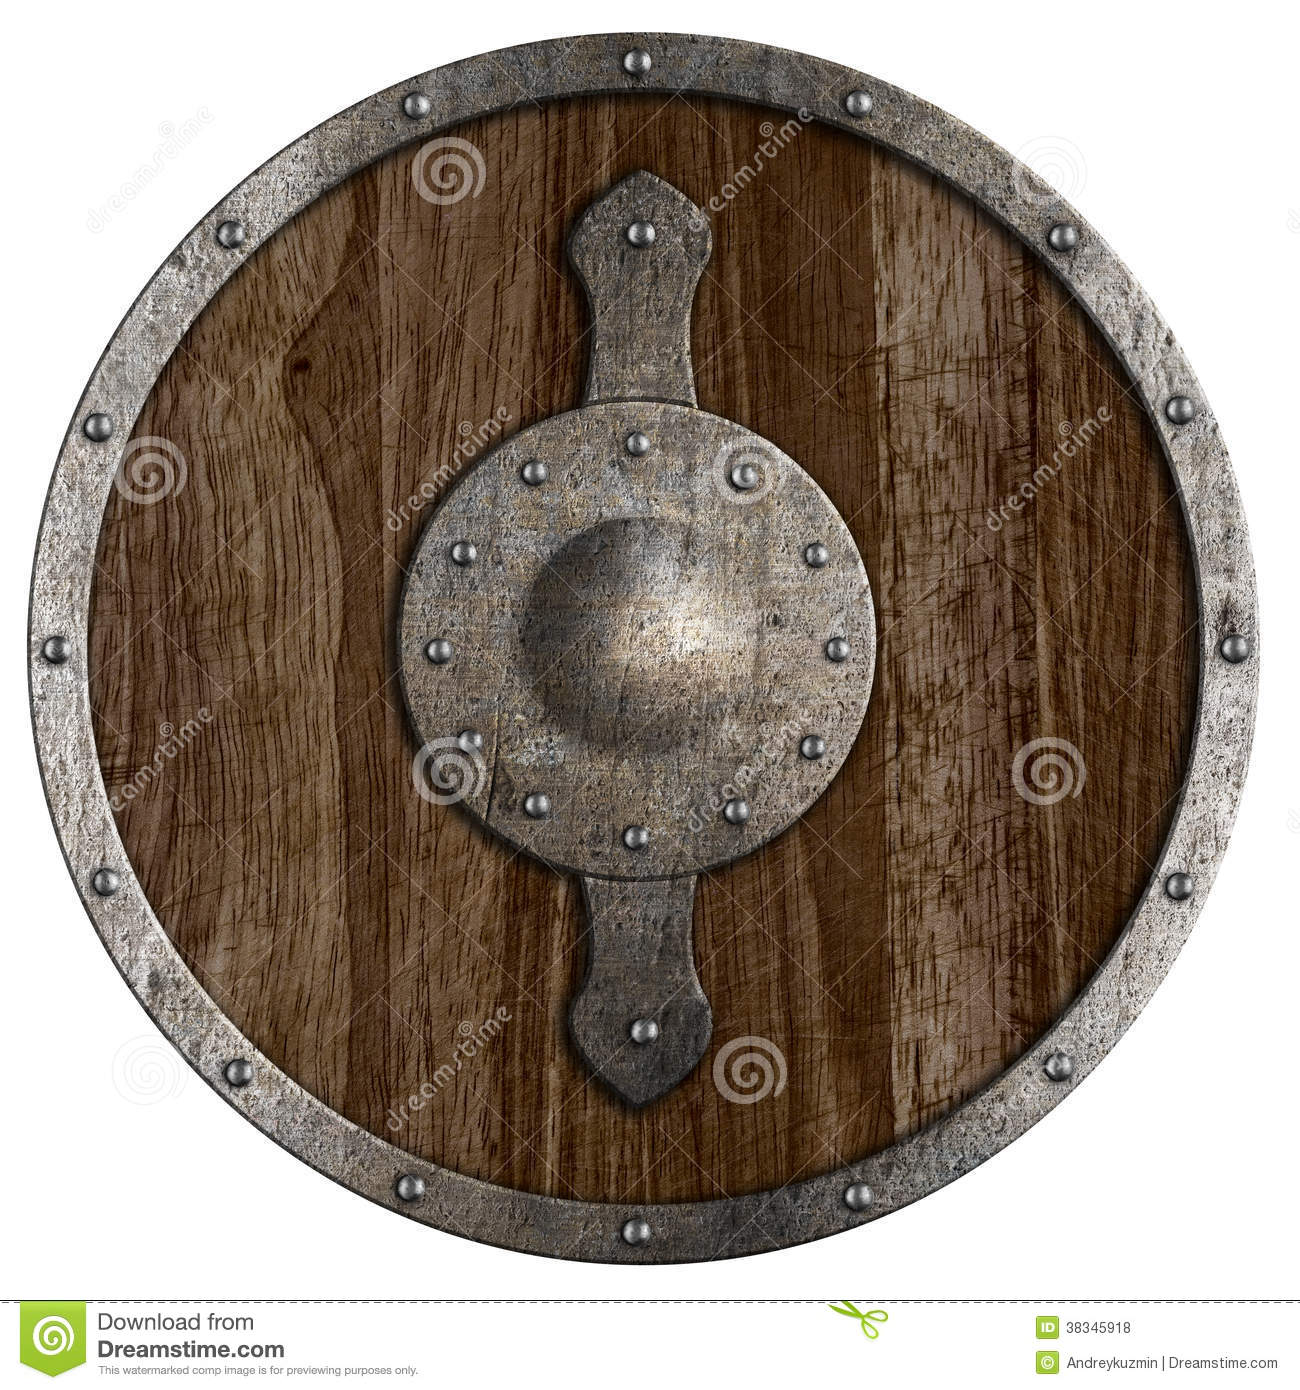 Medieval Round Wooden Shield Isolated Royalty Free Stock ...